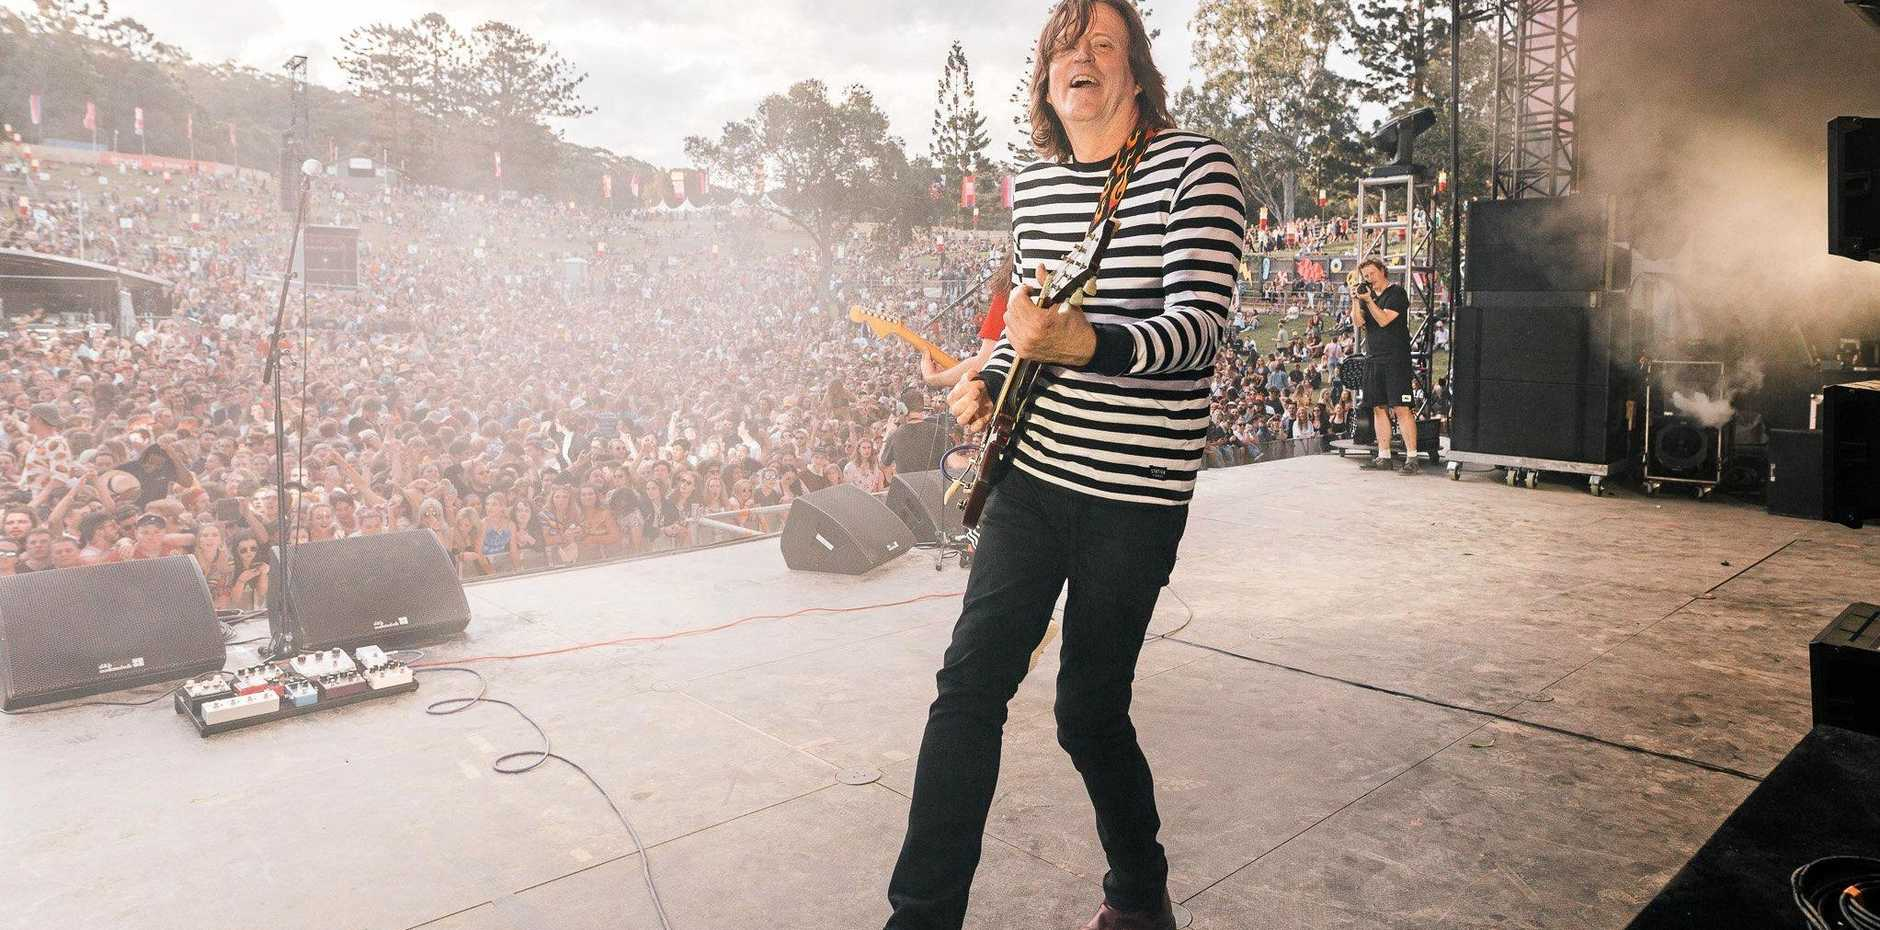 Former Red Wiggle Murray Cook on stage with DZ Deathrays at Splendour in the Grass 2018.